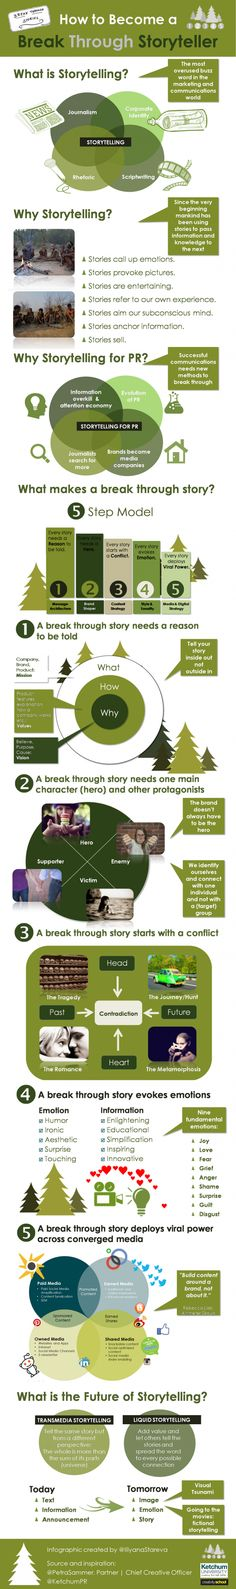 How to become a break through storyteller ? infographic #storytelling #communication